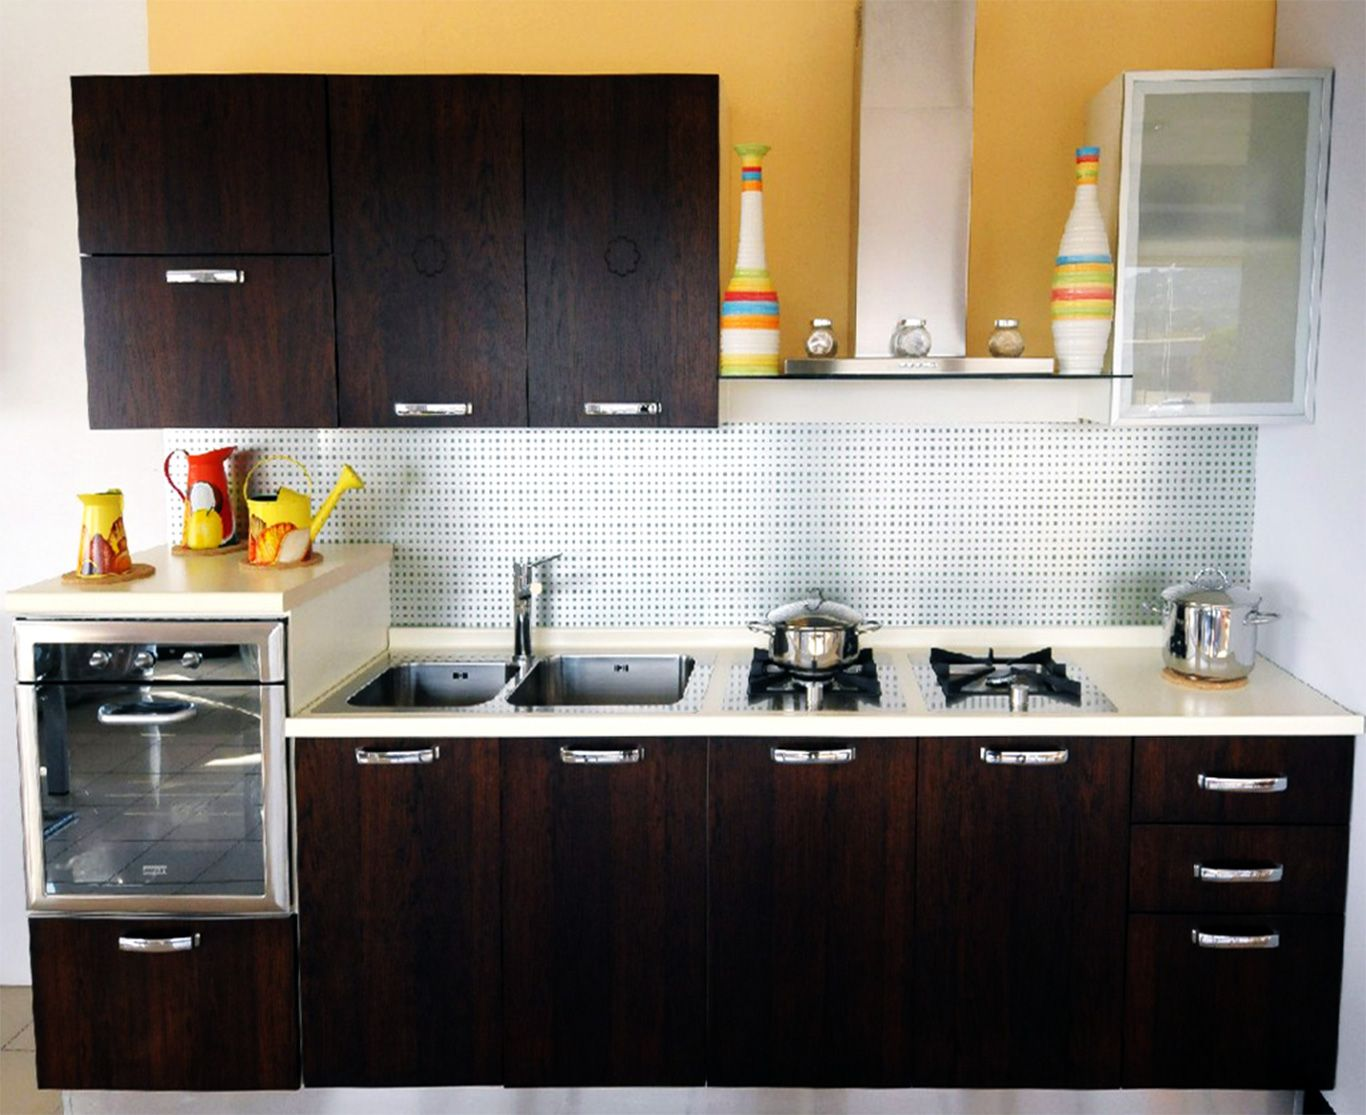 Pune kitchens is the modular kitchen shutters supplier for More kitchen designs